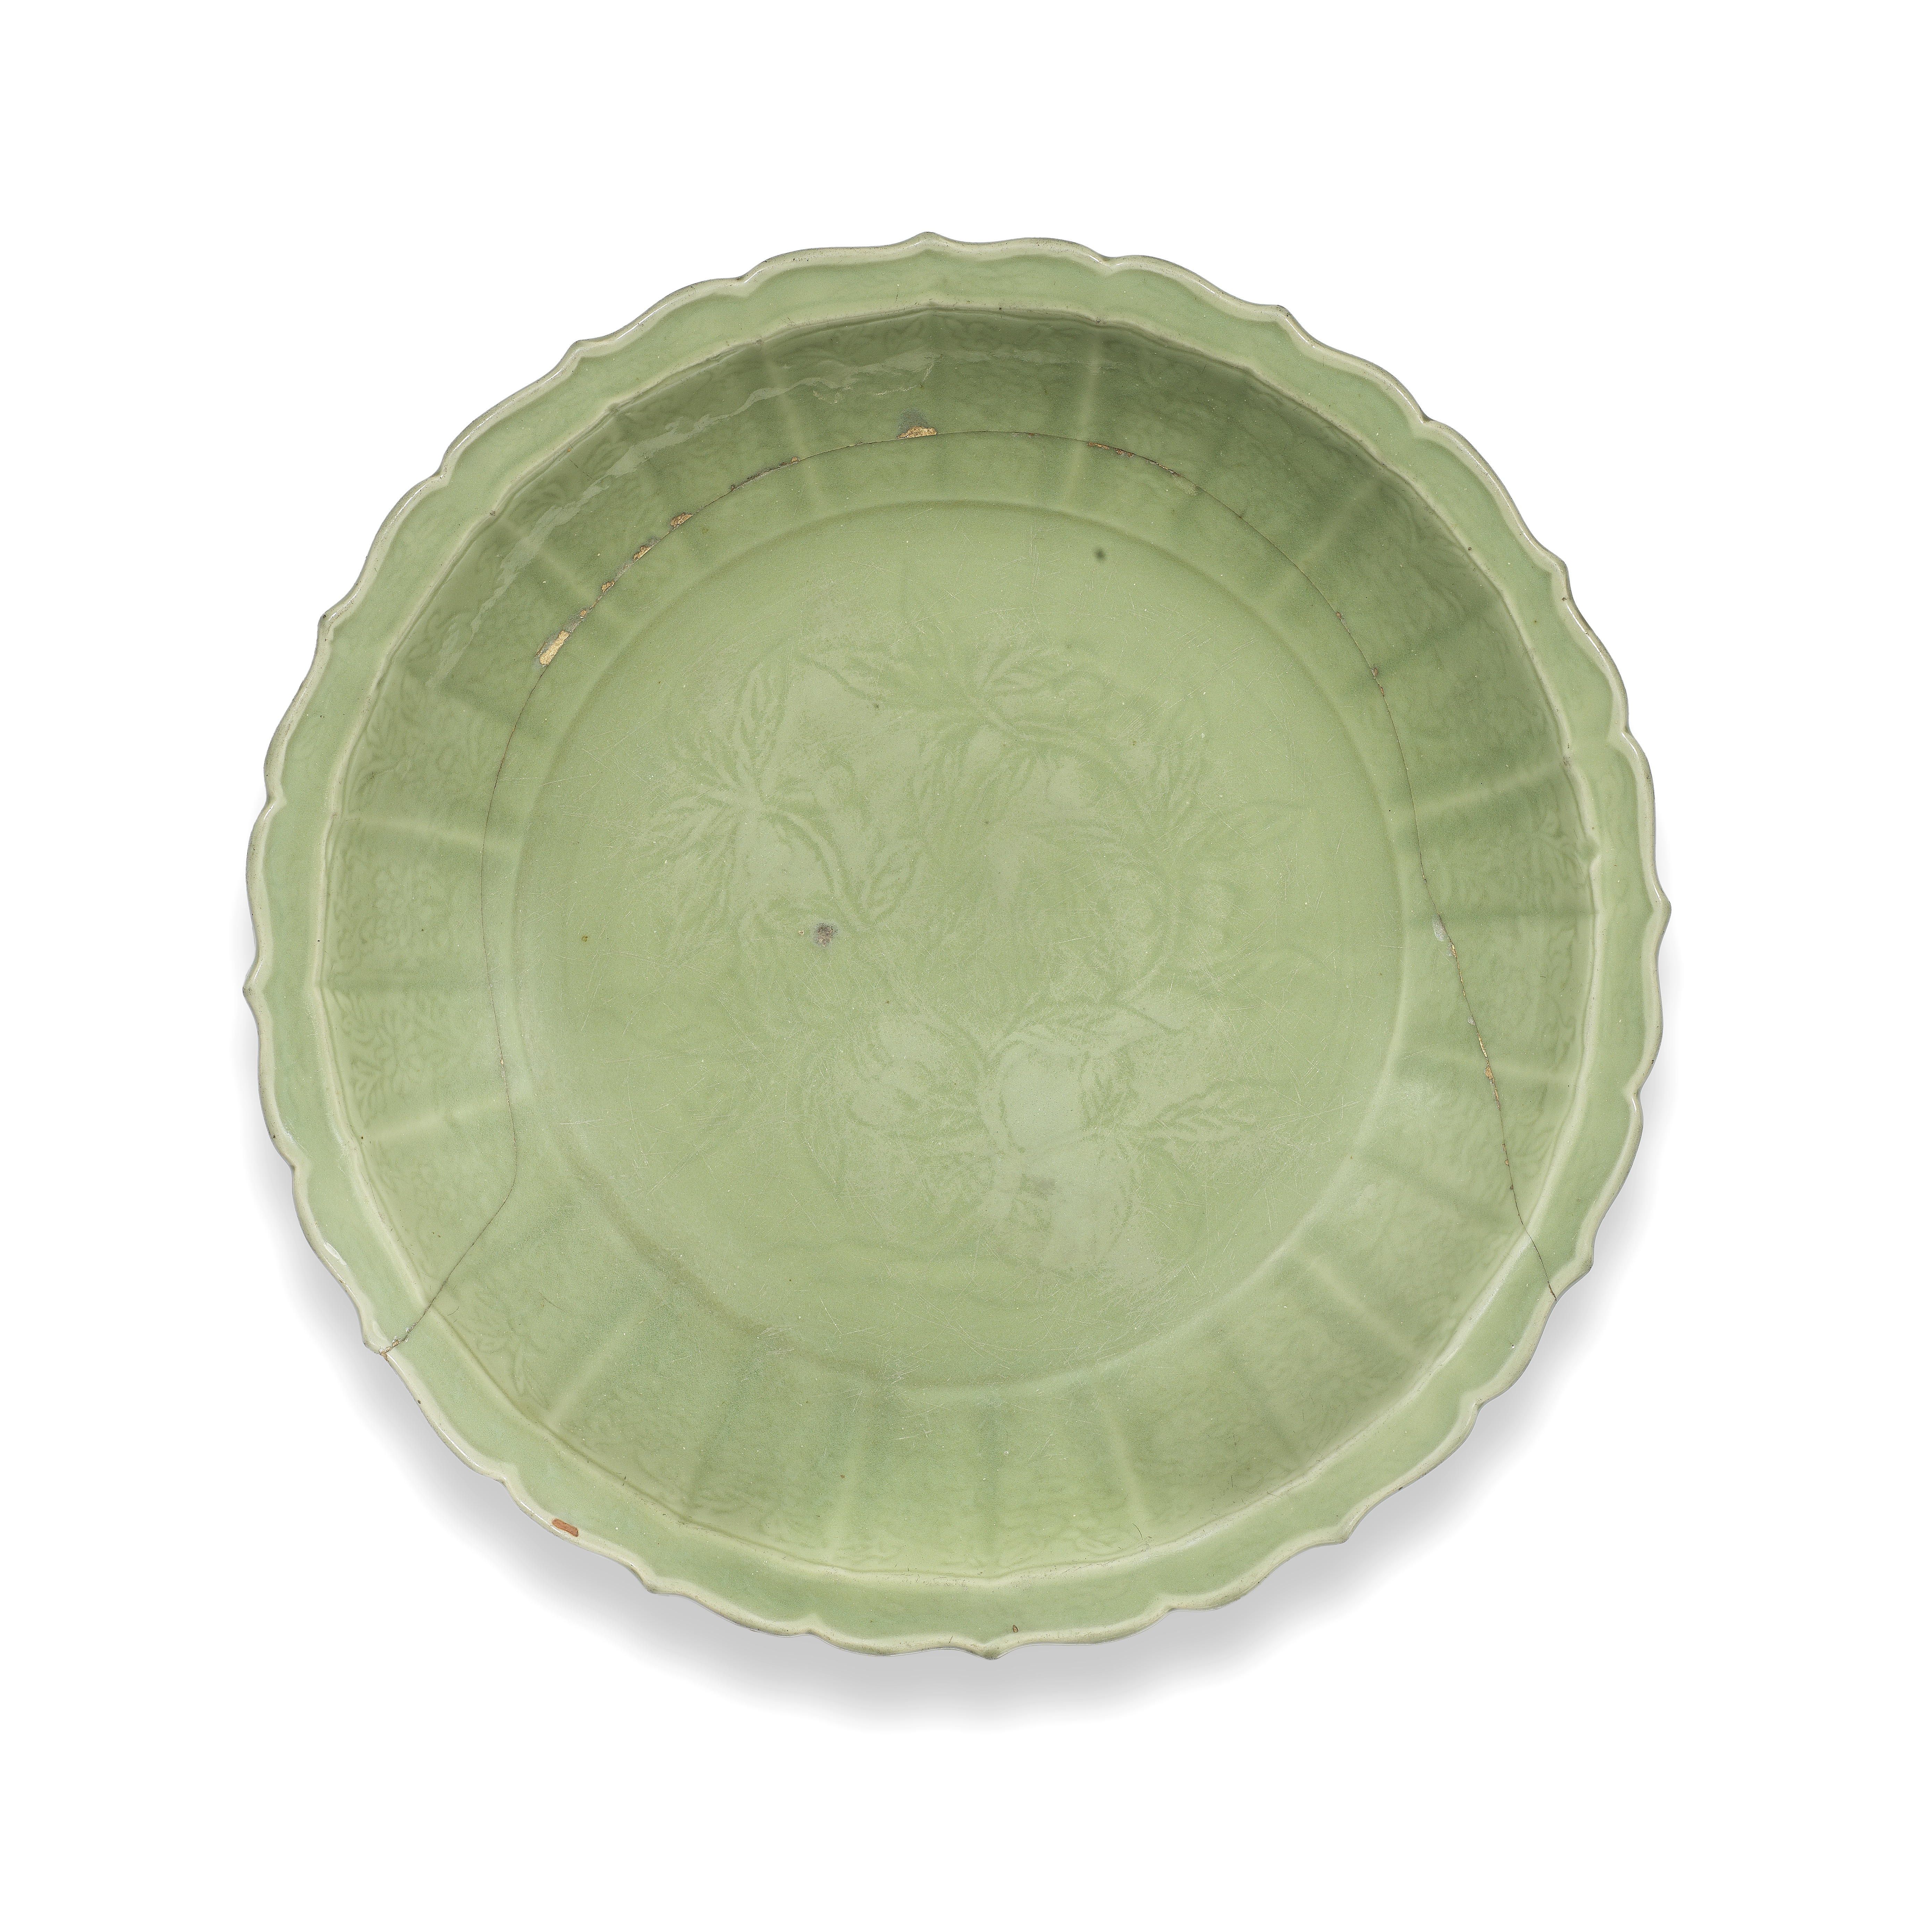 A RARE LONGQUAN CELADON-GLAZED BARBED-RIM 'LOQUATS' DISH Late 14th/early 15th century